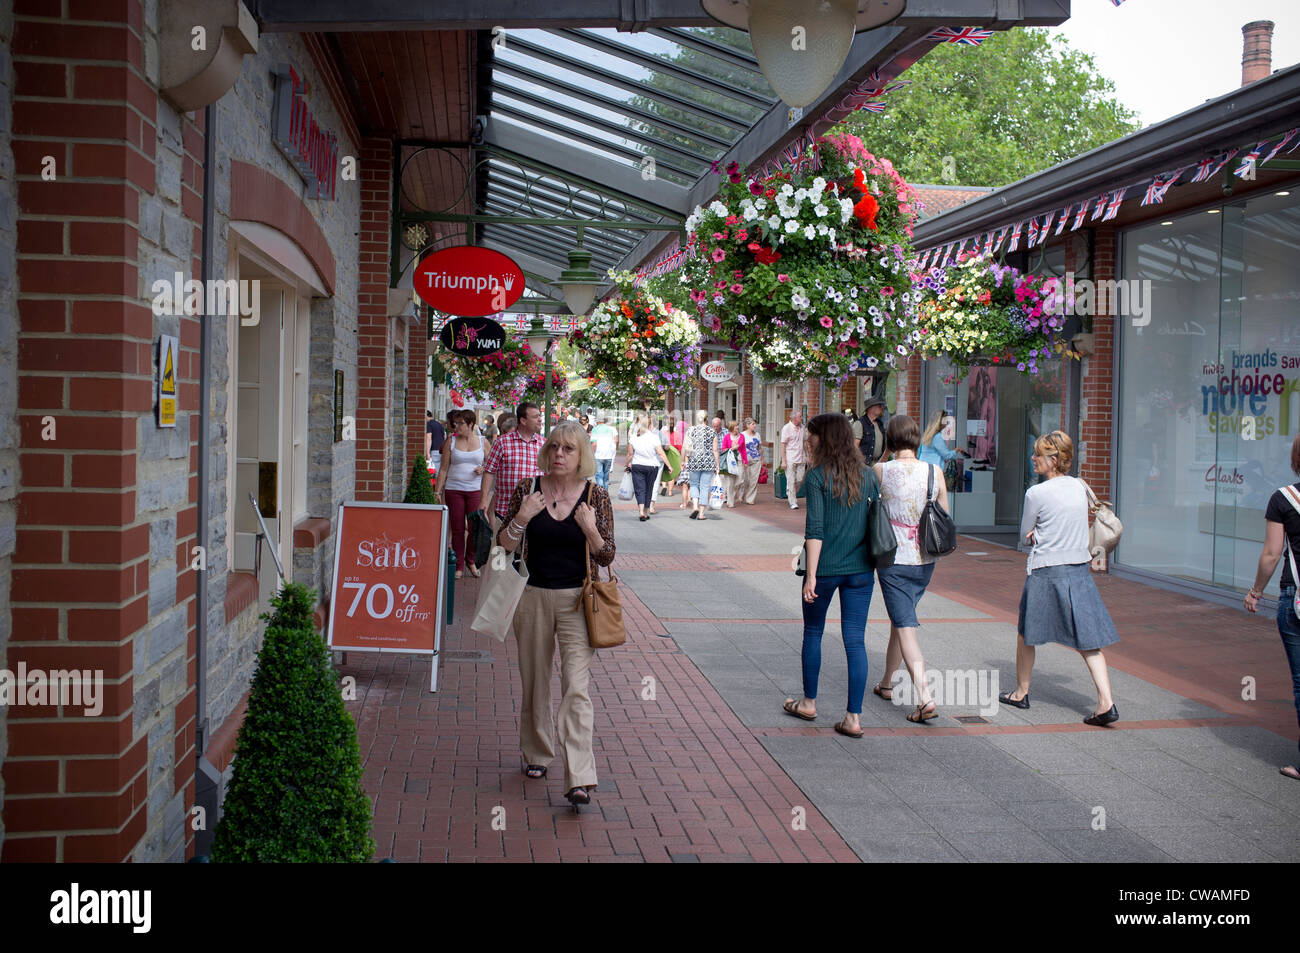 fa225faf285 Clarks Village Stock Photos & Clarks Village Stock Images - Alamy